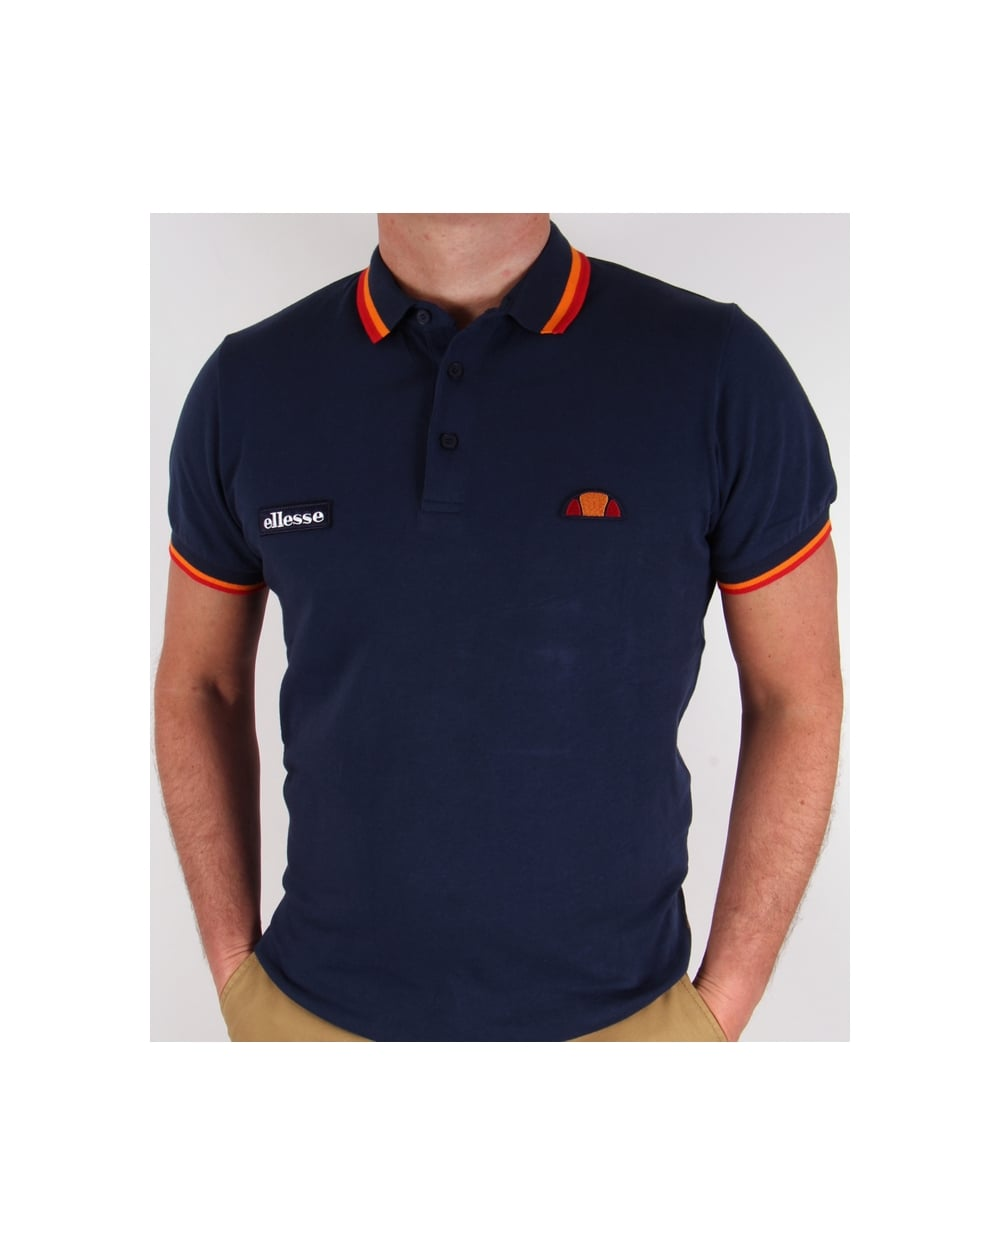 368b90479 ... sweden navy blue and orange polo shirt d3274 bcc87